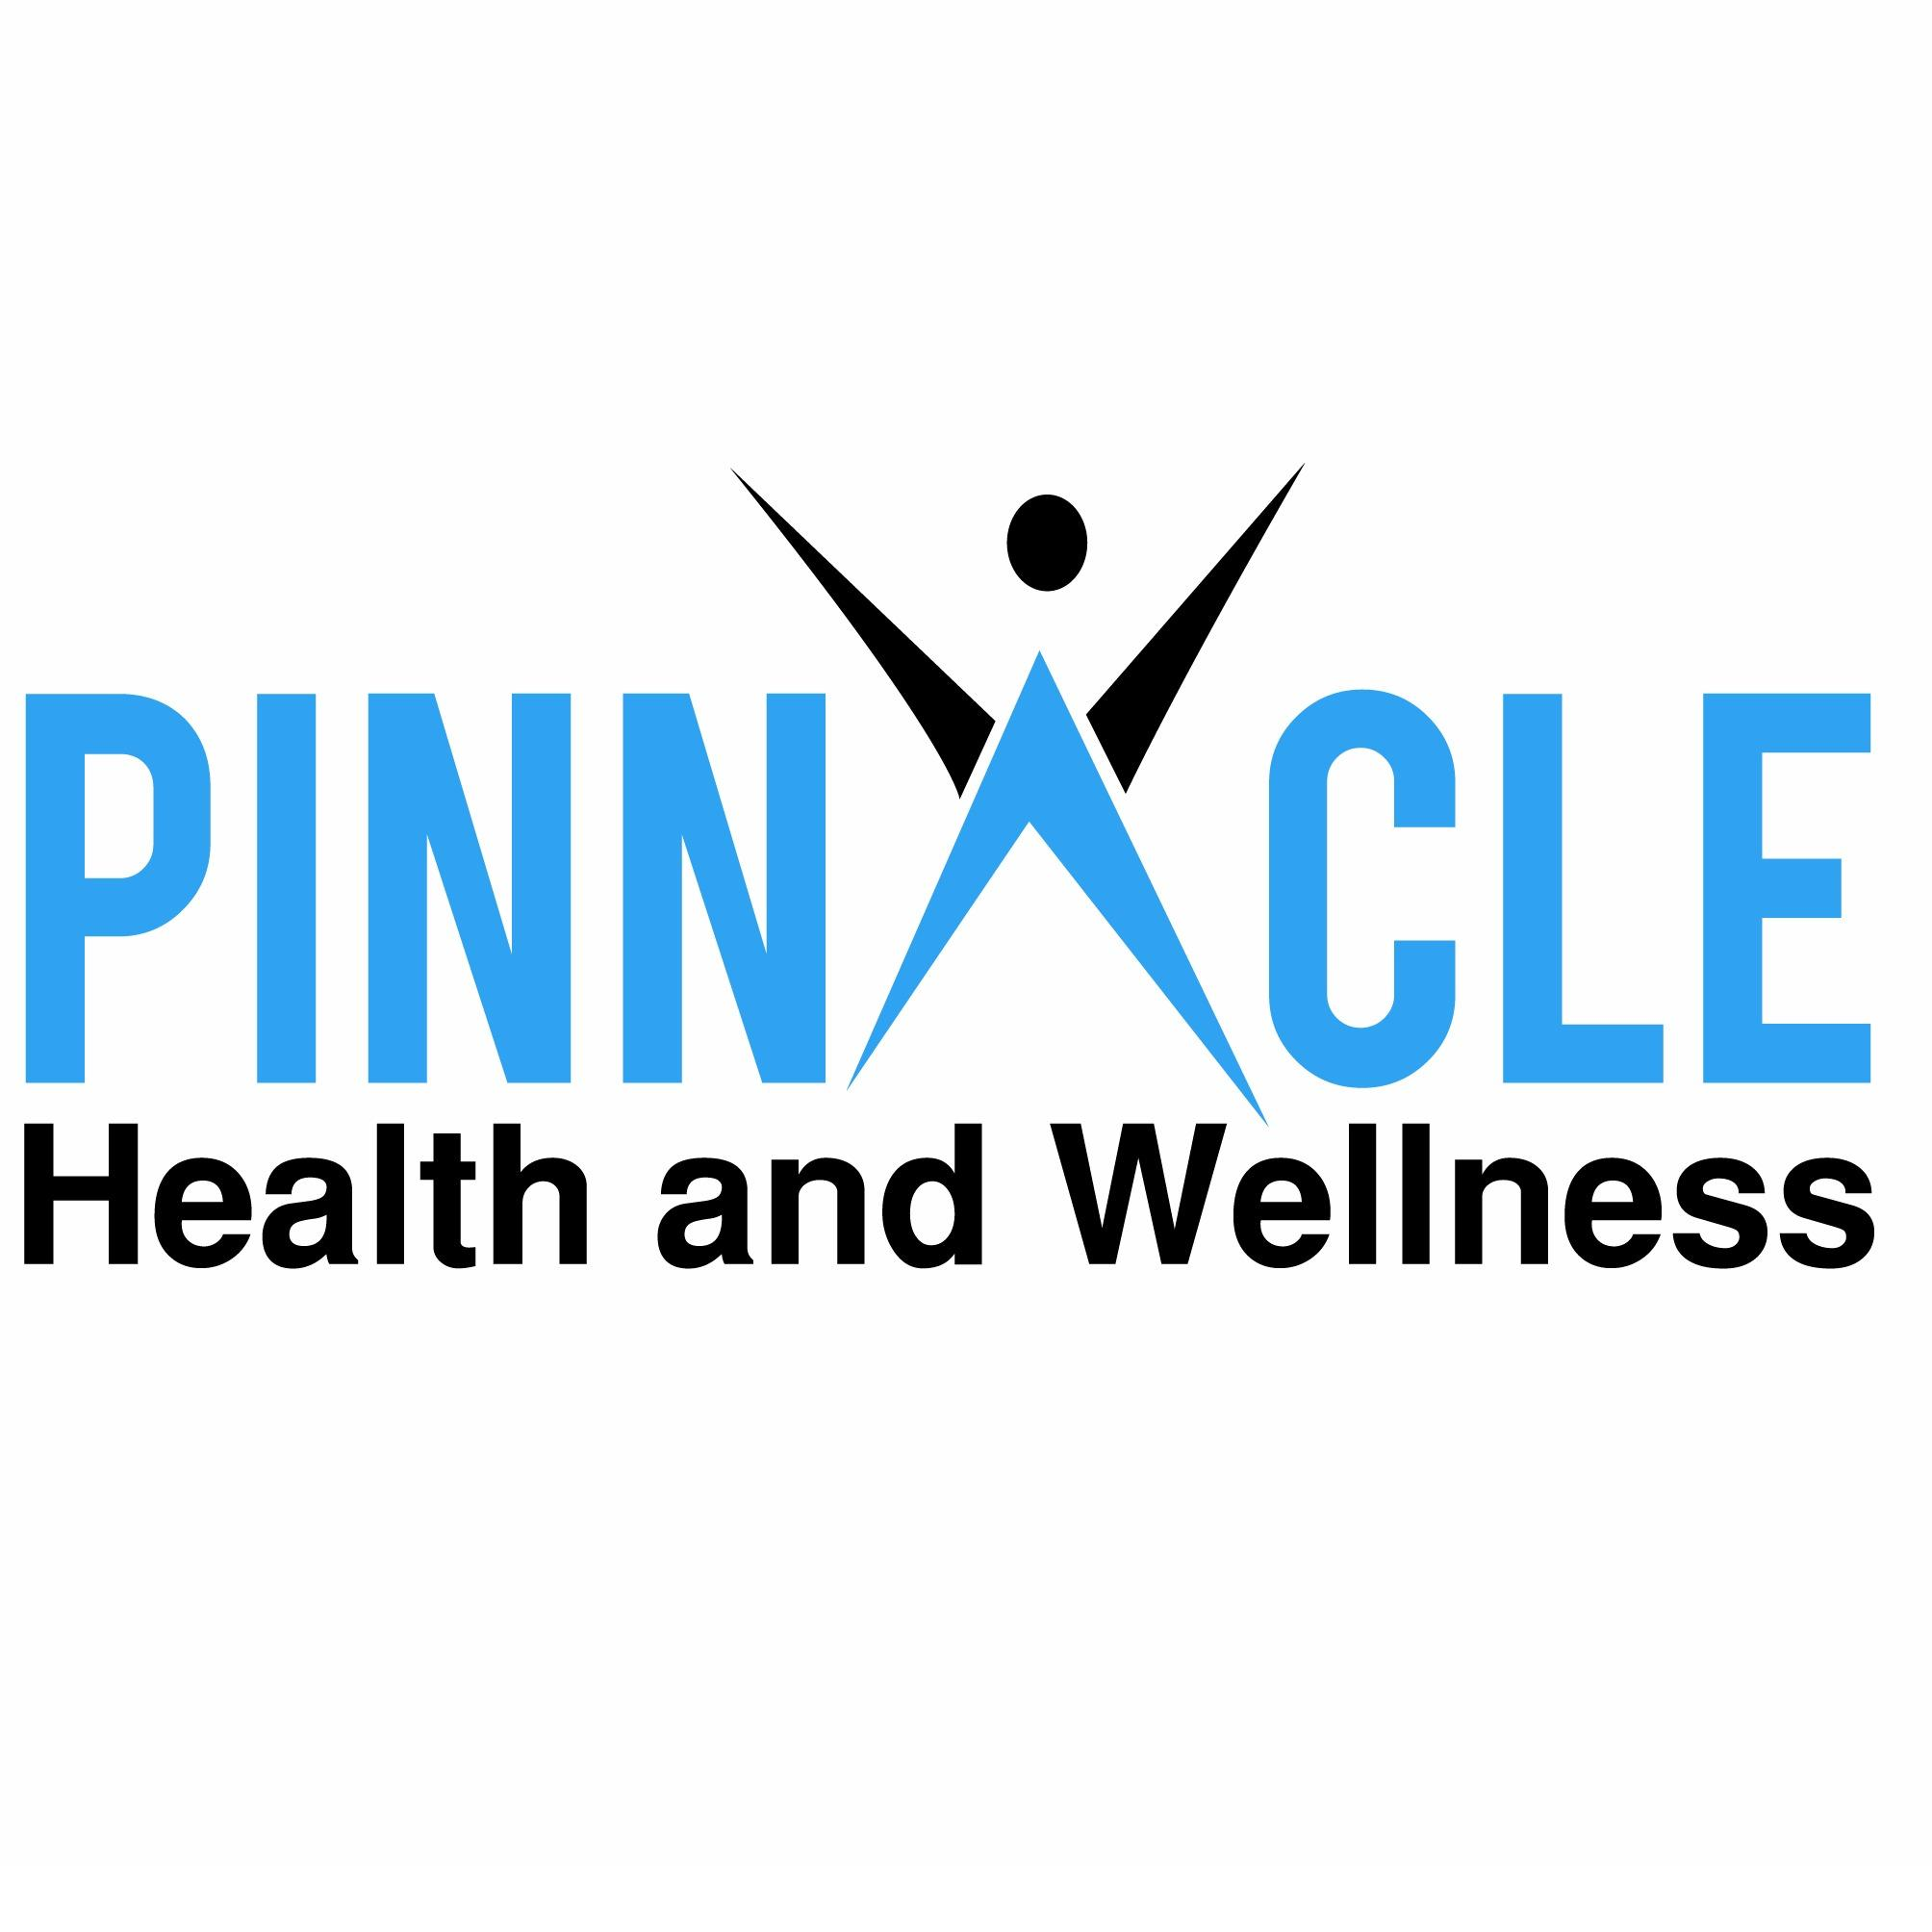 Pinnacle Health and Wellness